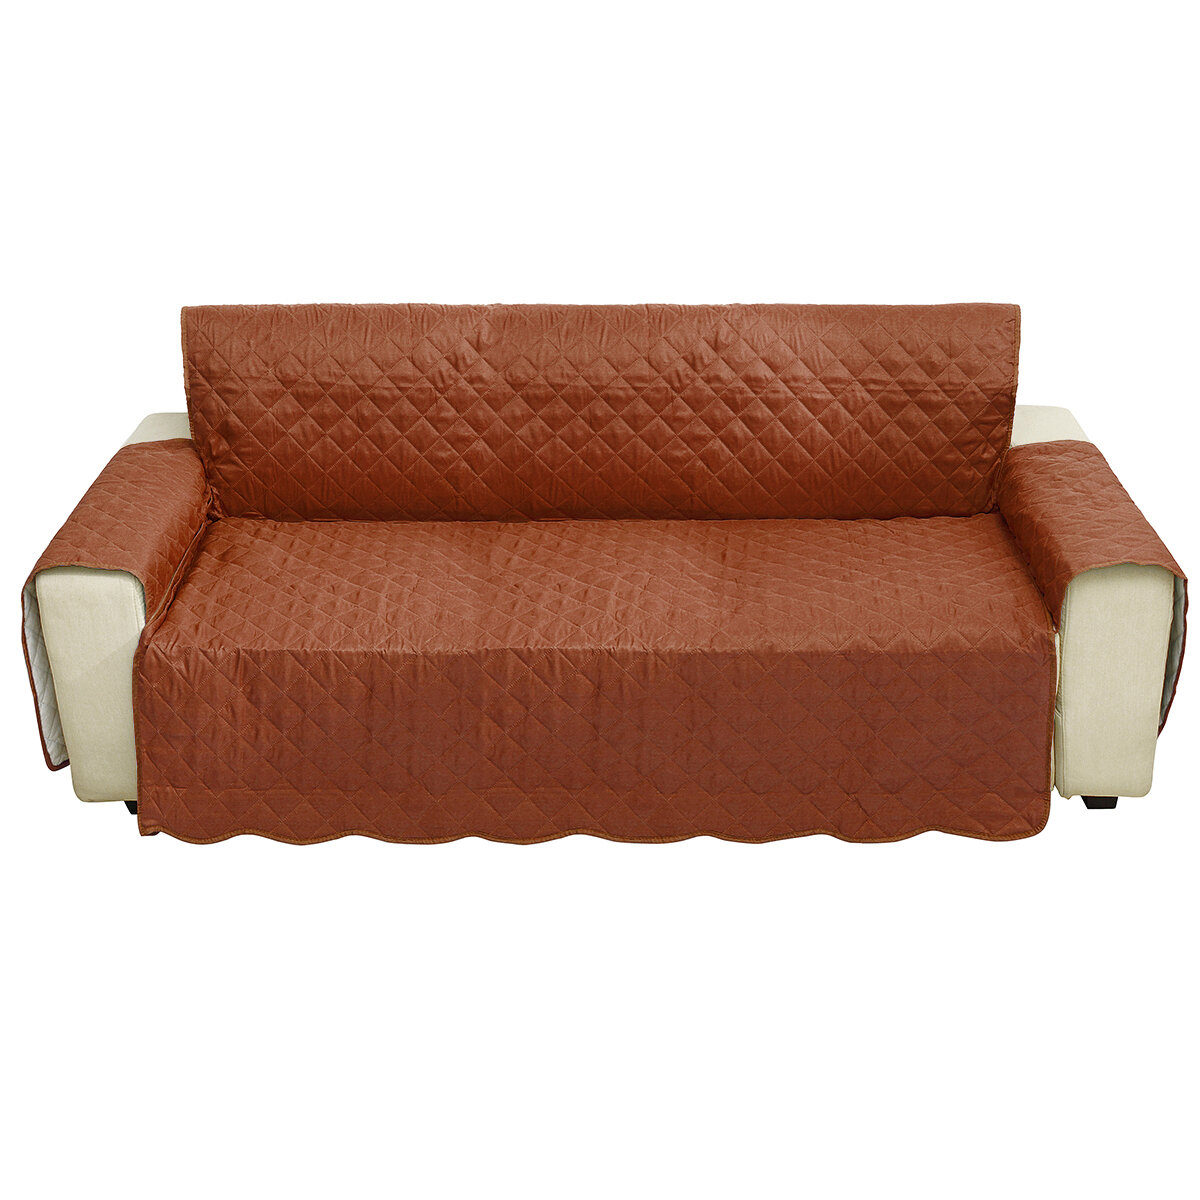 3 Seater Seats Sofa Chair Cover Living Room Home Decoration Polyester Fashion Dust Proof